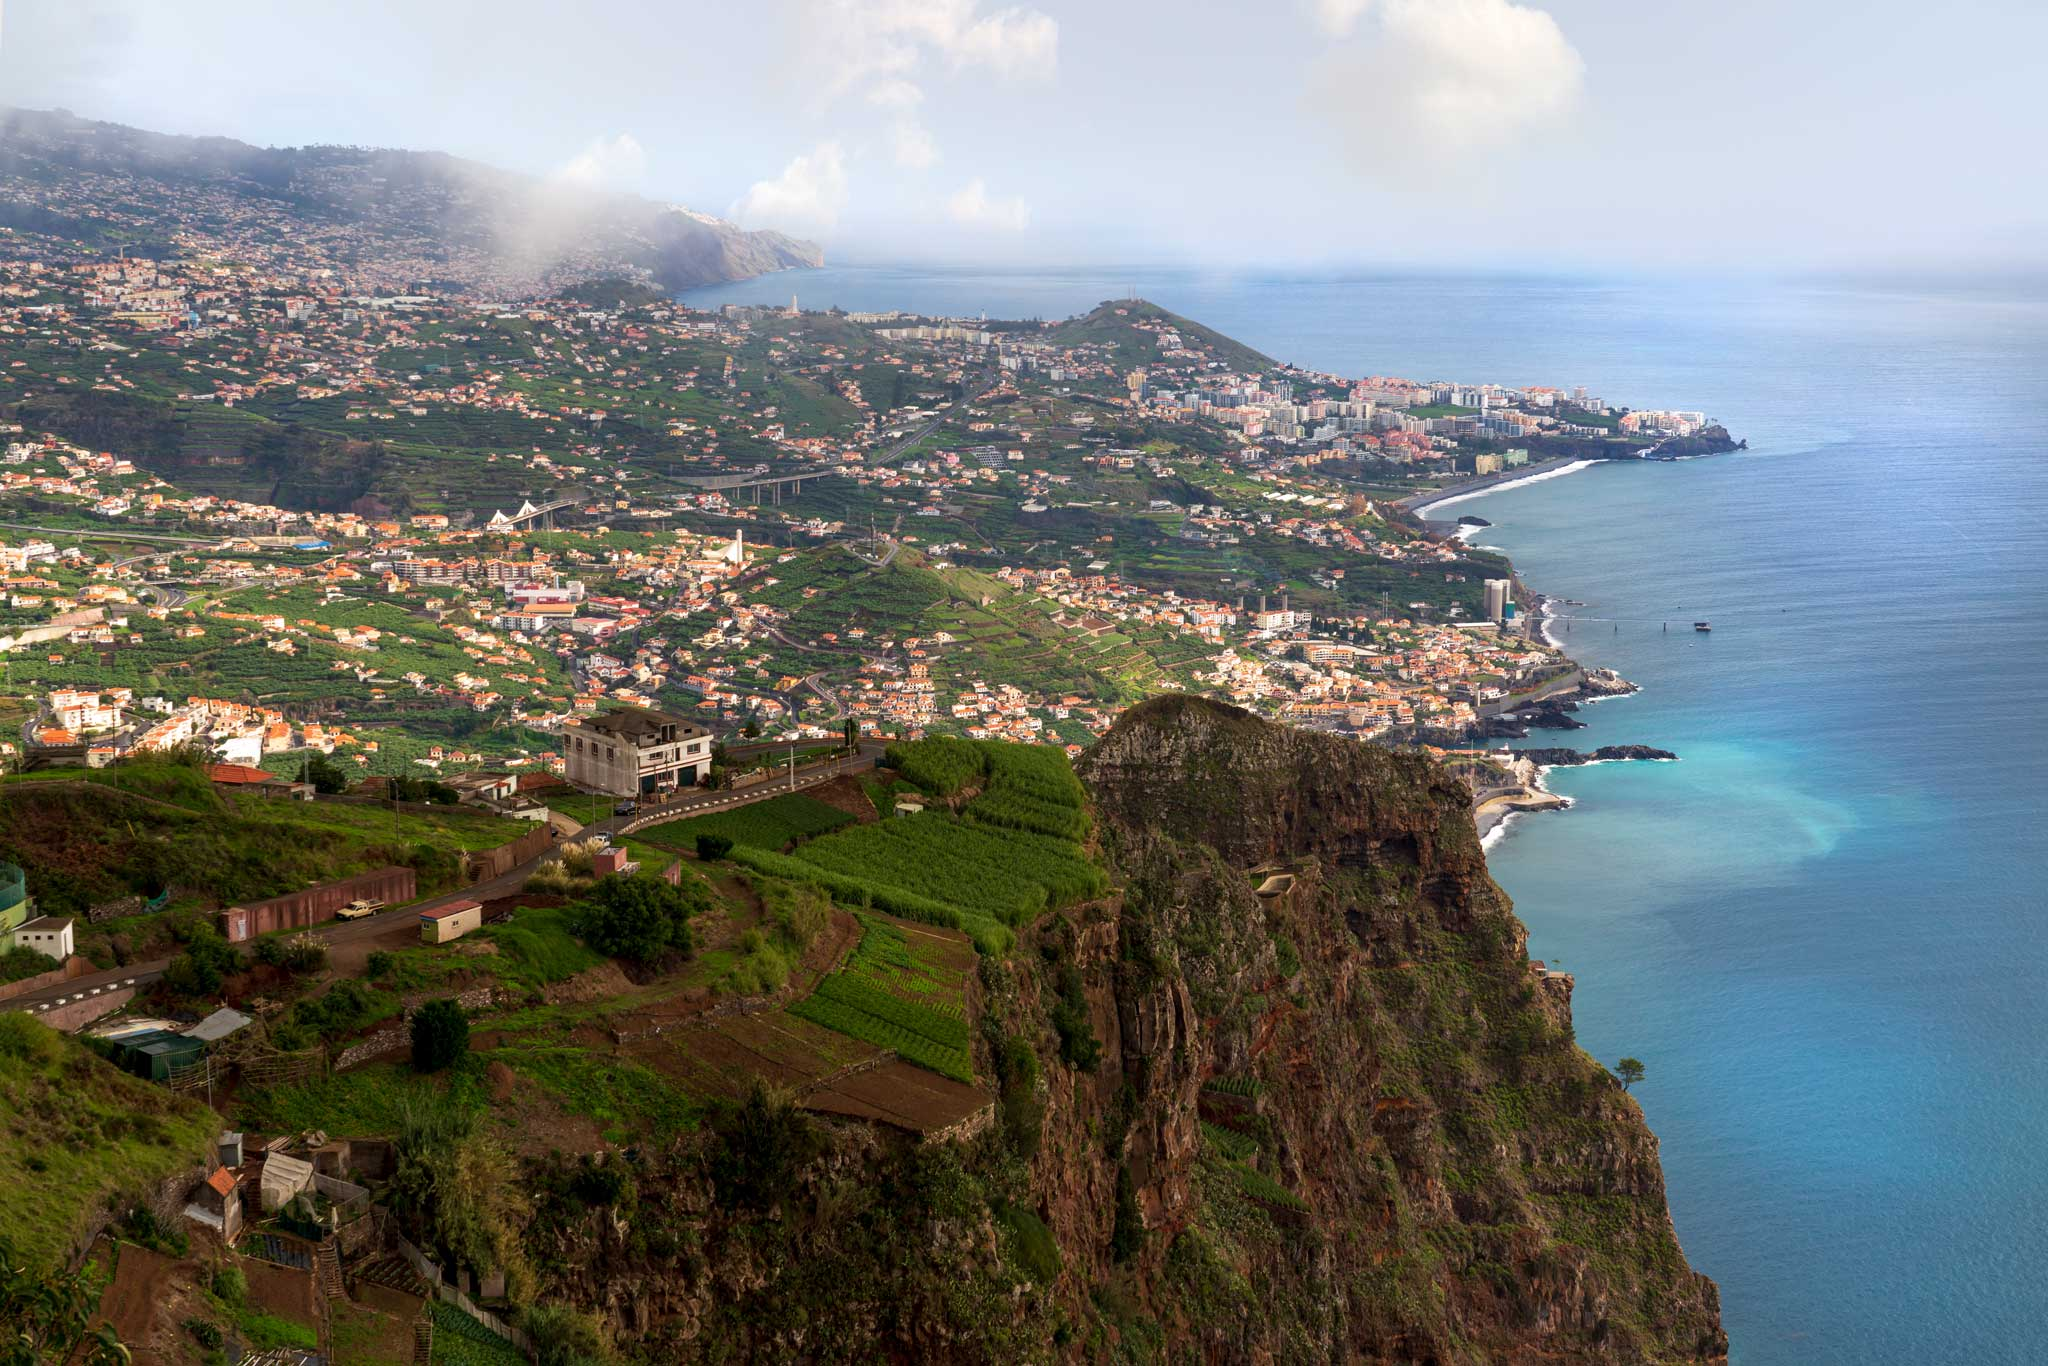 The view Cabo Girao across to Funchal